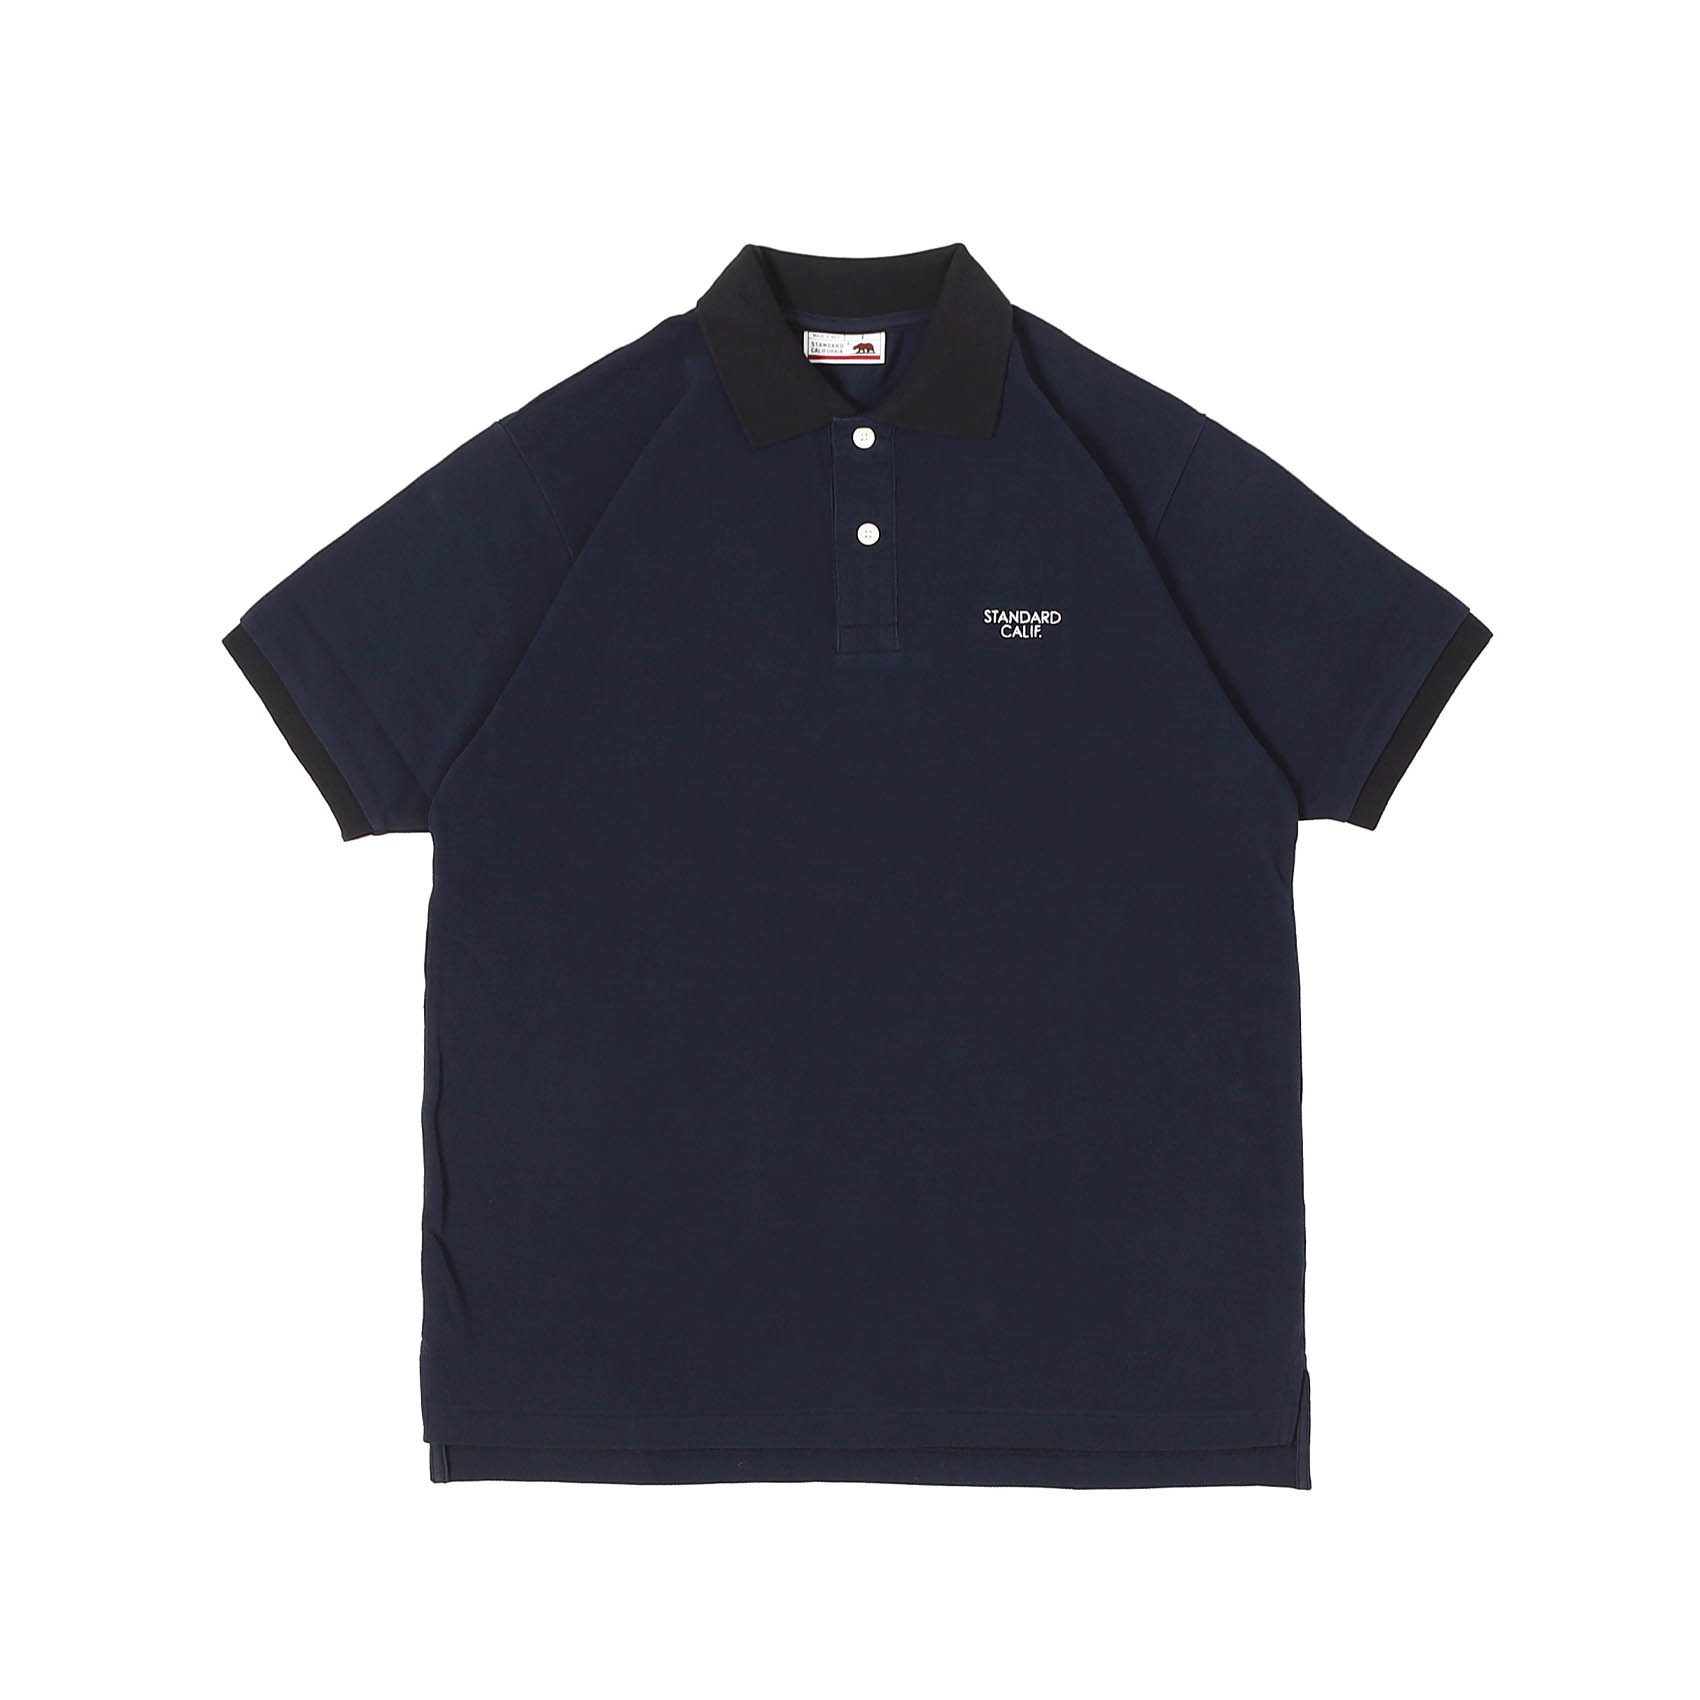 LOGO POLO SHIRT - NAVY